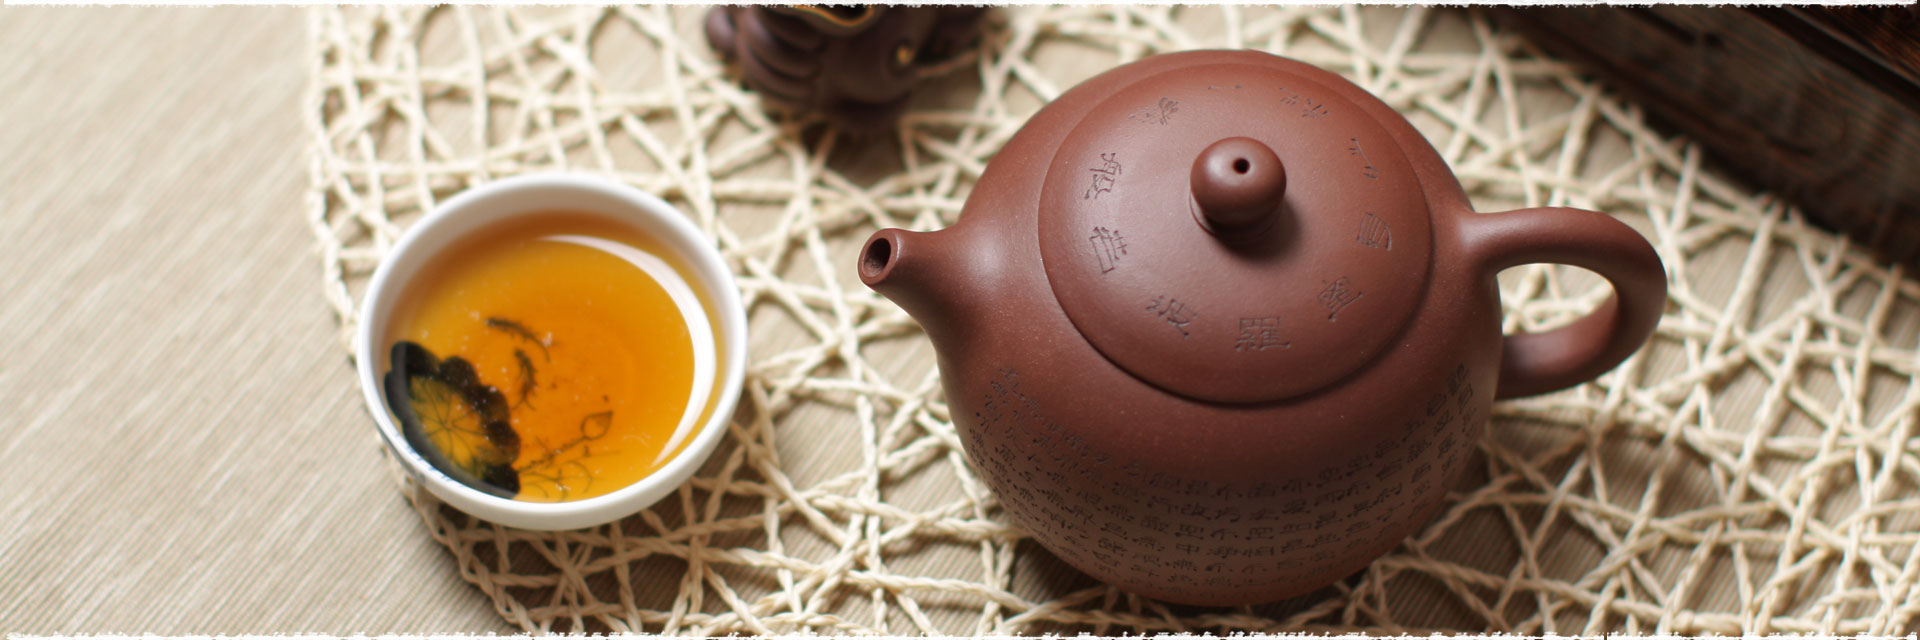 How to Choose a Proper Yixing Teapot for a Single Type of Tea